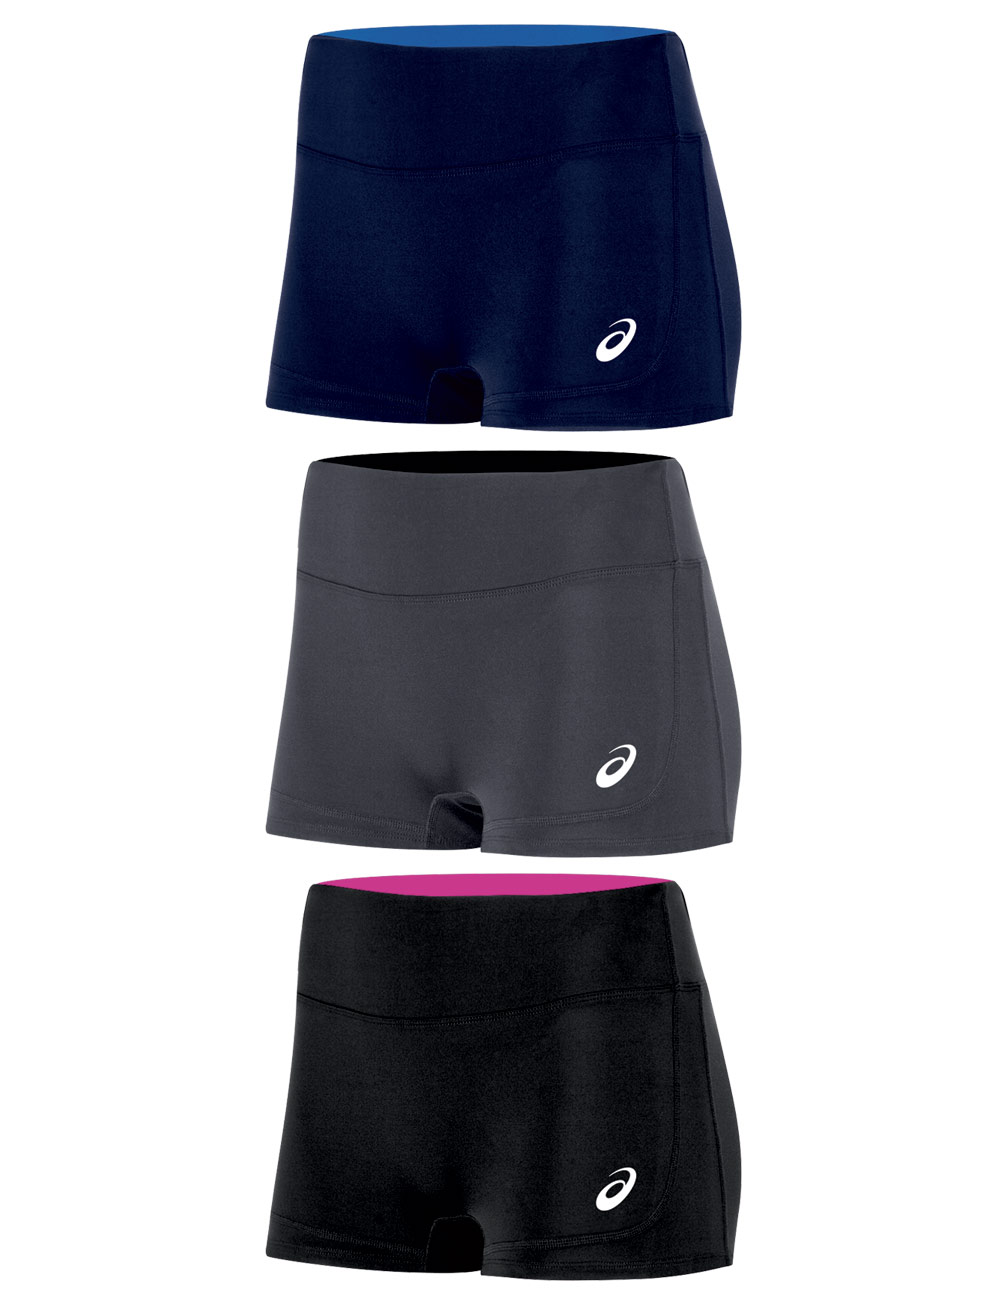 Asics Volley Booty Shorts  Midwest Volleyball Warehouse-9015